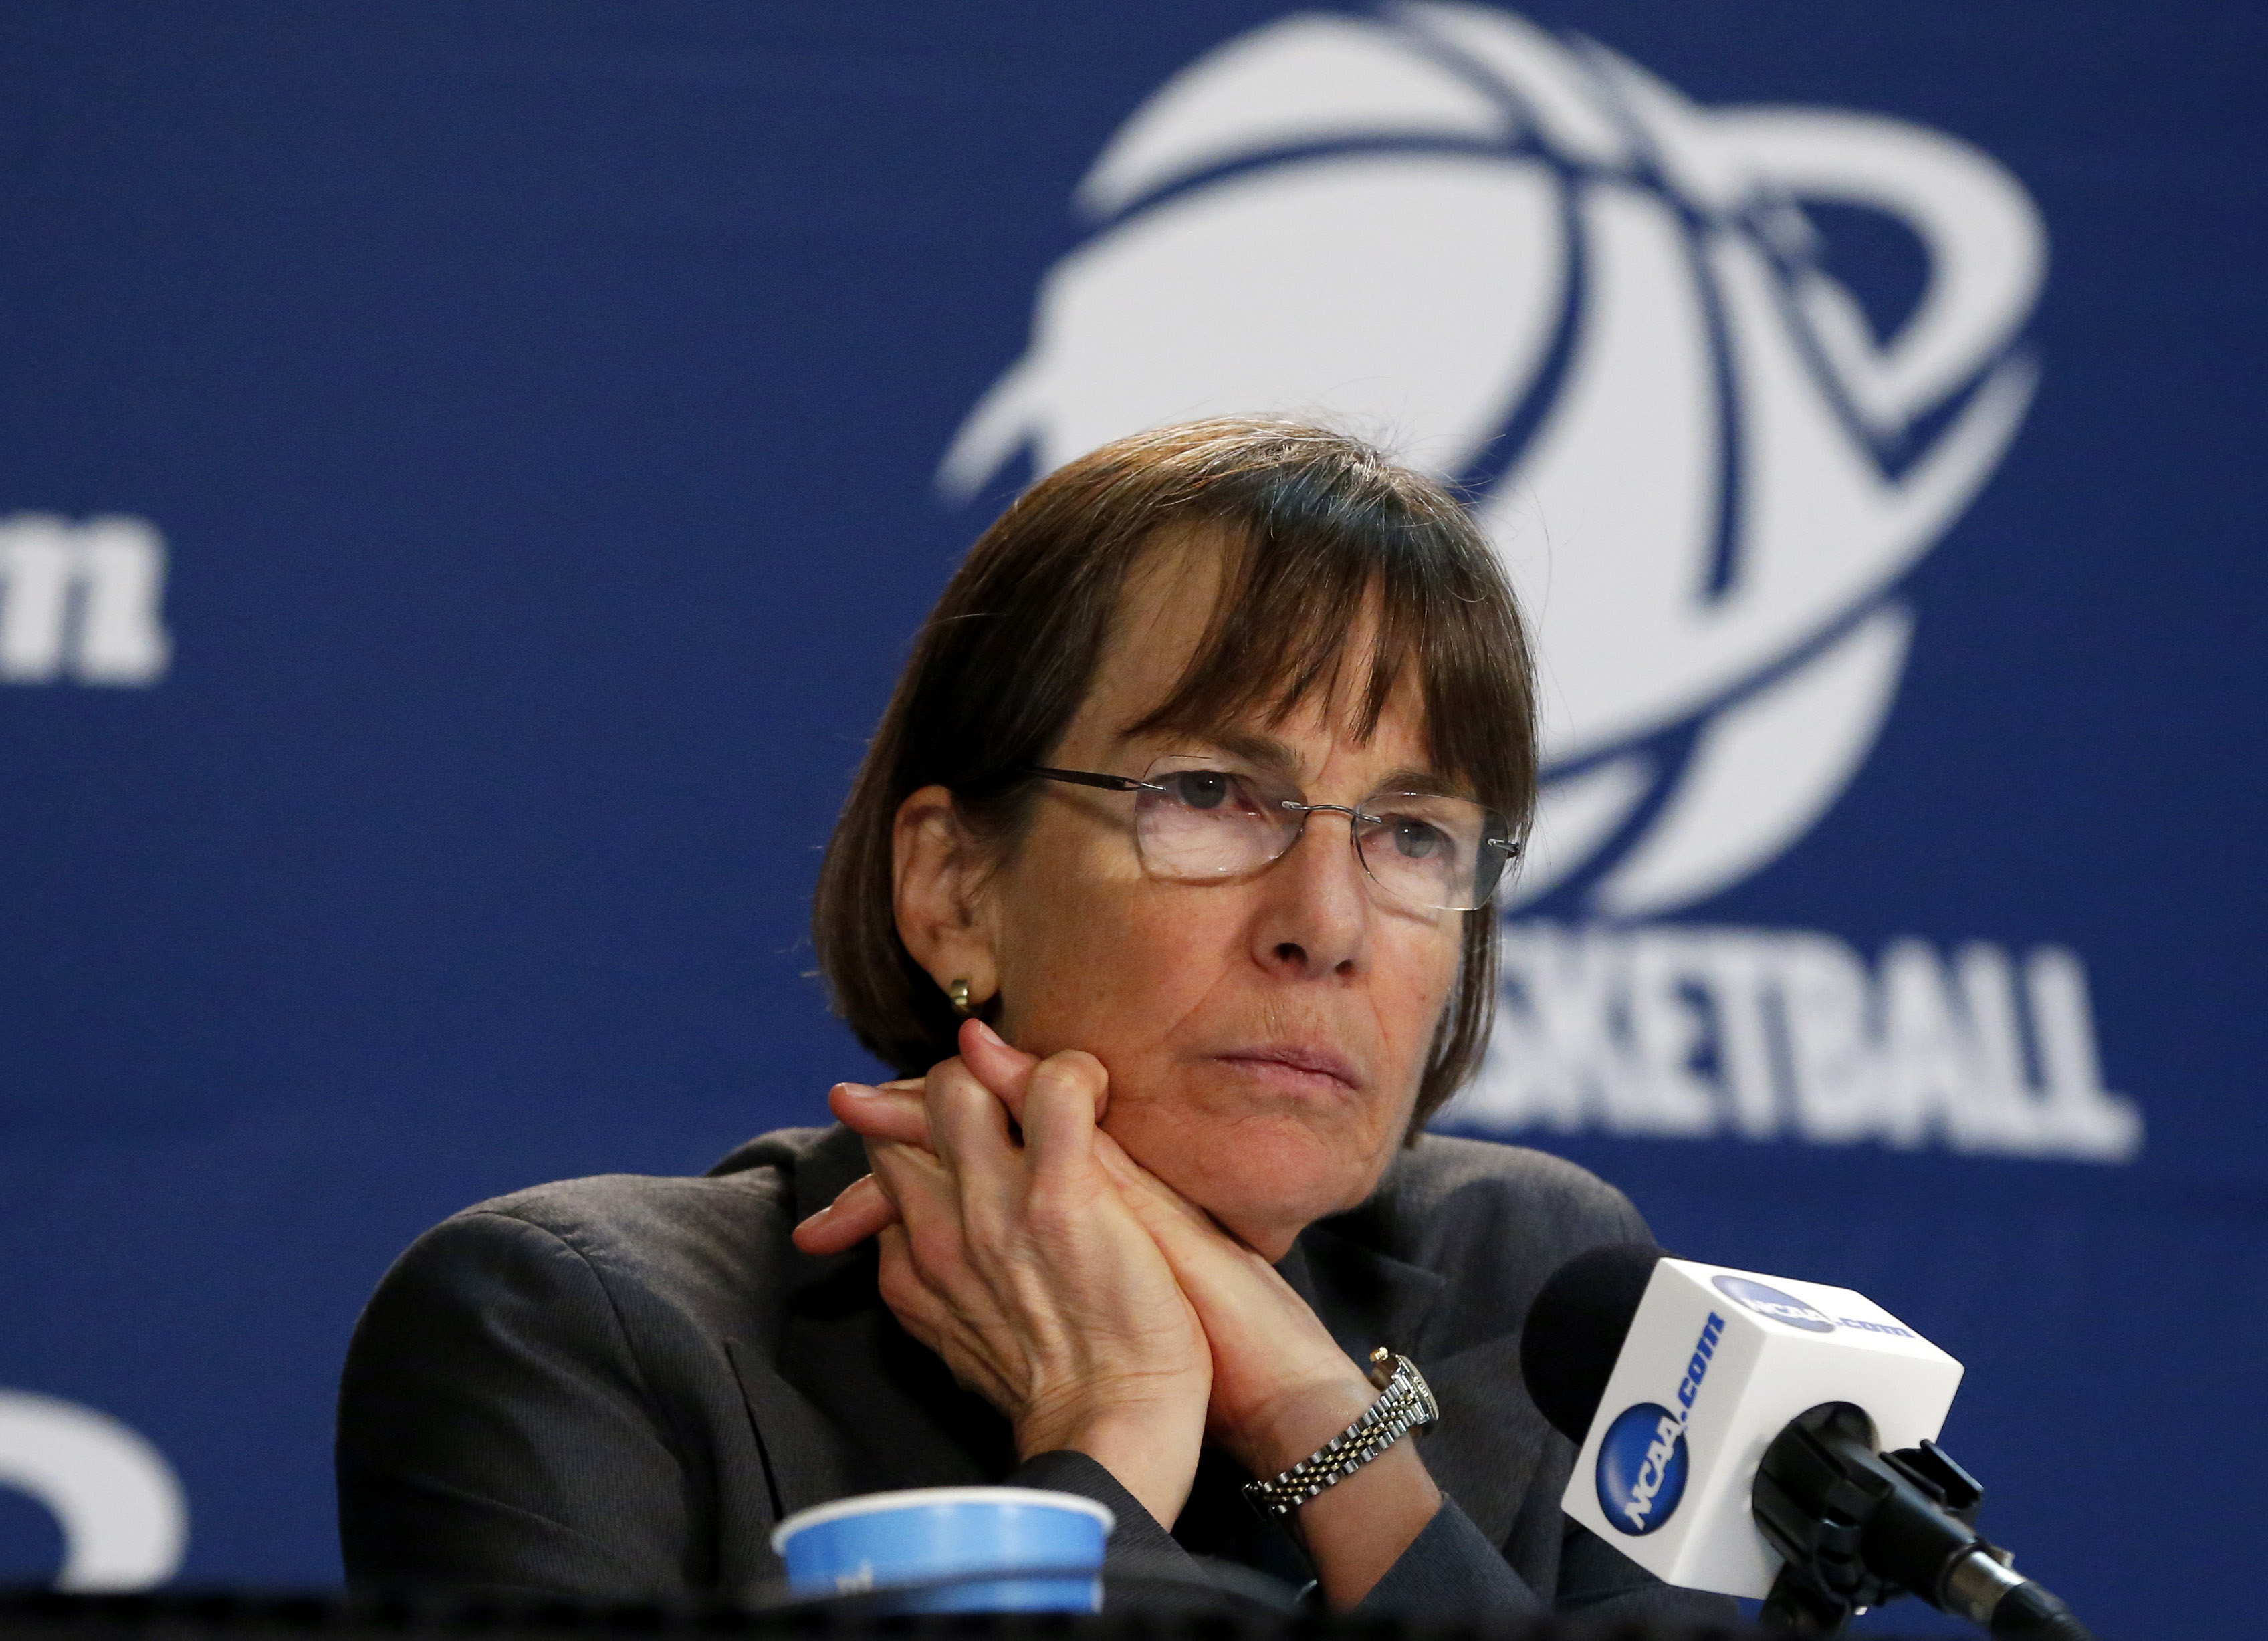 FILE - In this March 27, 2015, file photo, Stanford coach Tara VanDerveer listens during a news conference after a women's college basketball regional semifinal game against Notre Dame in the NCAA tournament in Oklahoma City. VanDerveer tunes in to as man